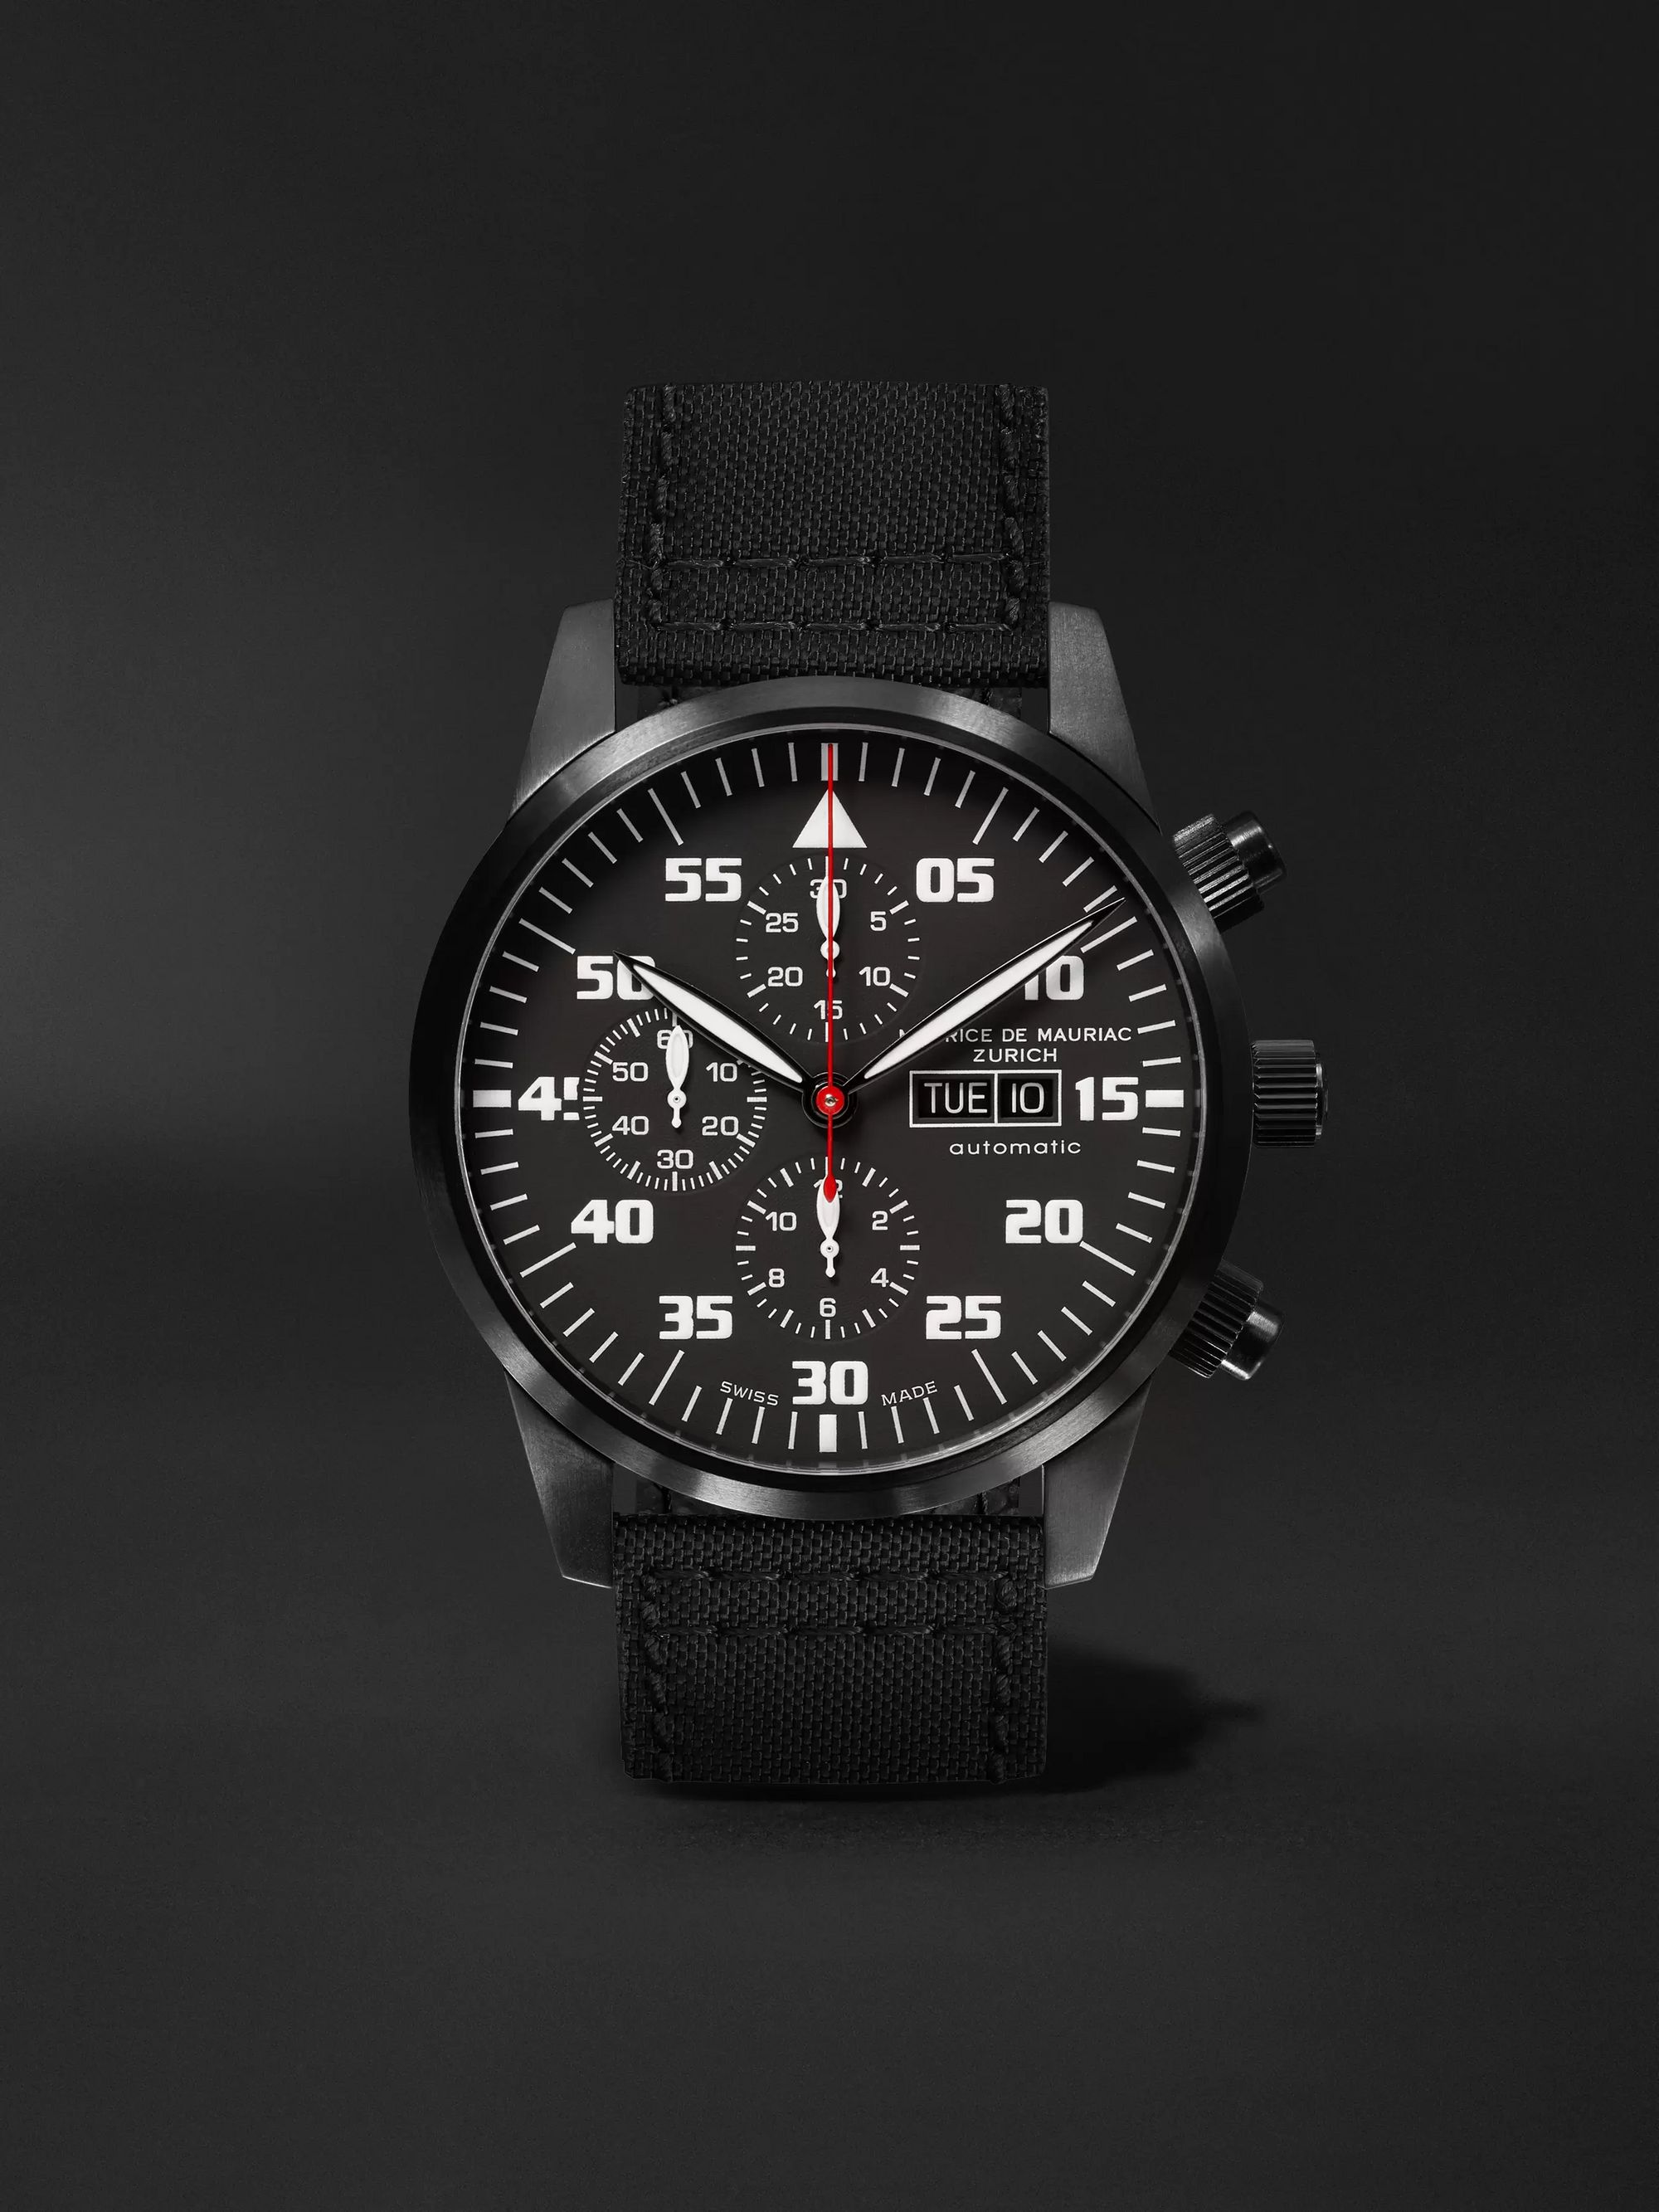 Maurice de Mauriac Zurich Chronograph 45mm PVD-Coated Stainless Steel and Kevlar Watch, Ref. No. CH MO 034 06 L